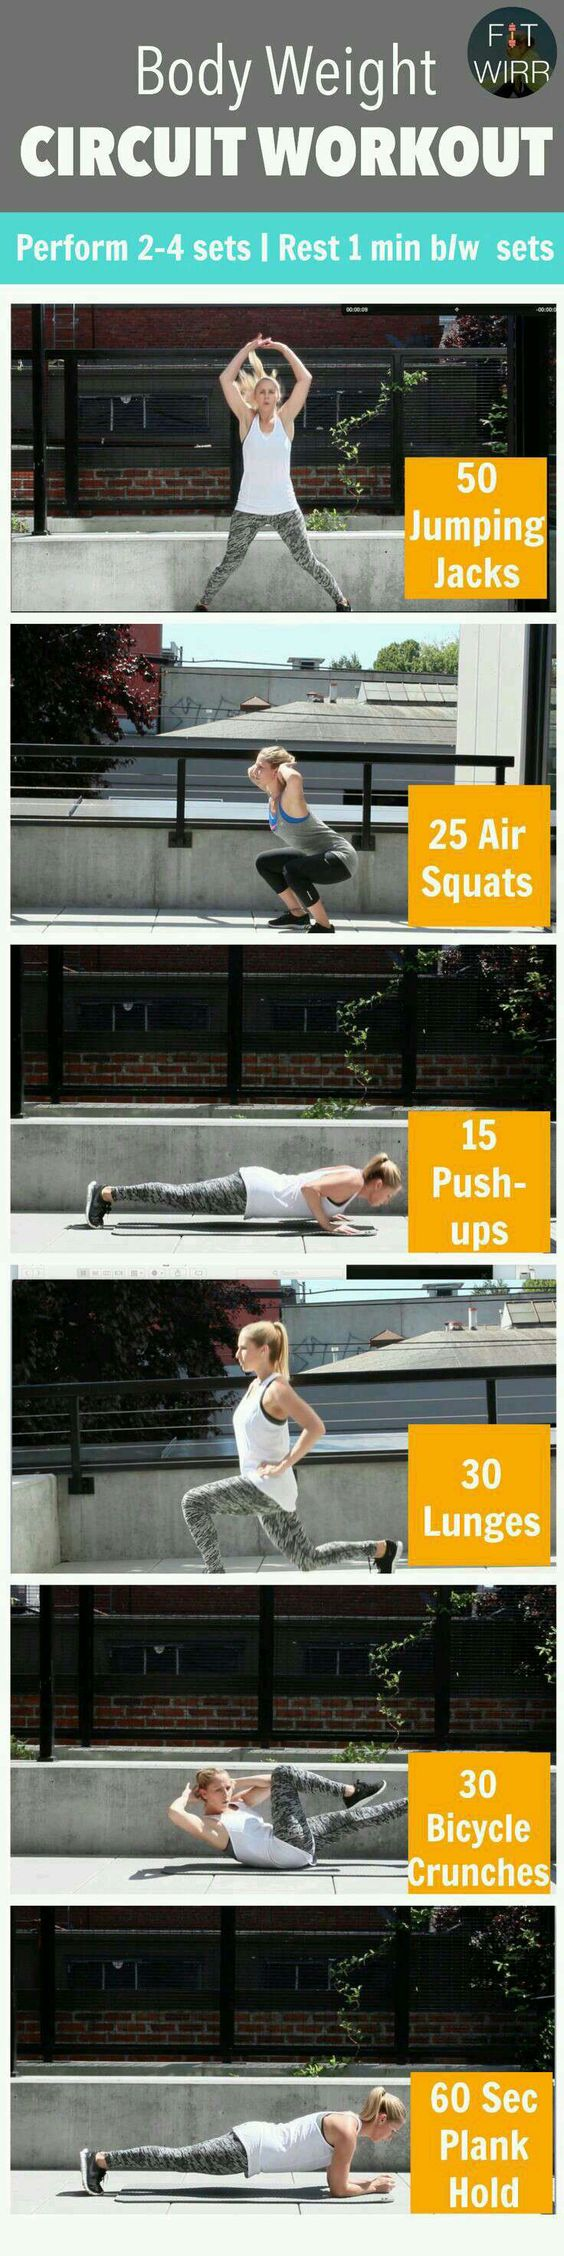 Loose Chubby Fat With This Amazing Effective Proven Body Circuit Workout #Health #Fitness #Trusper #Tip